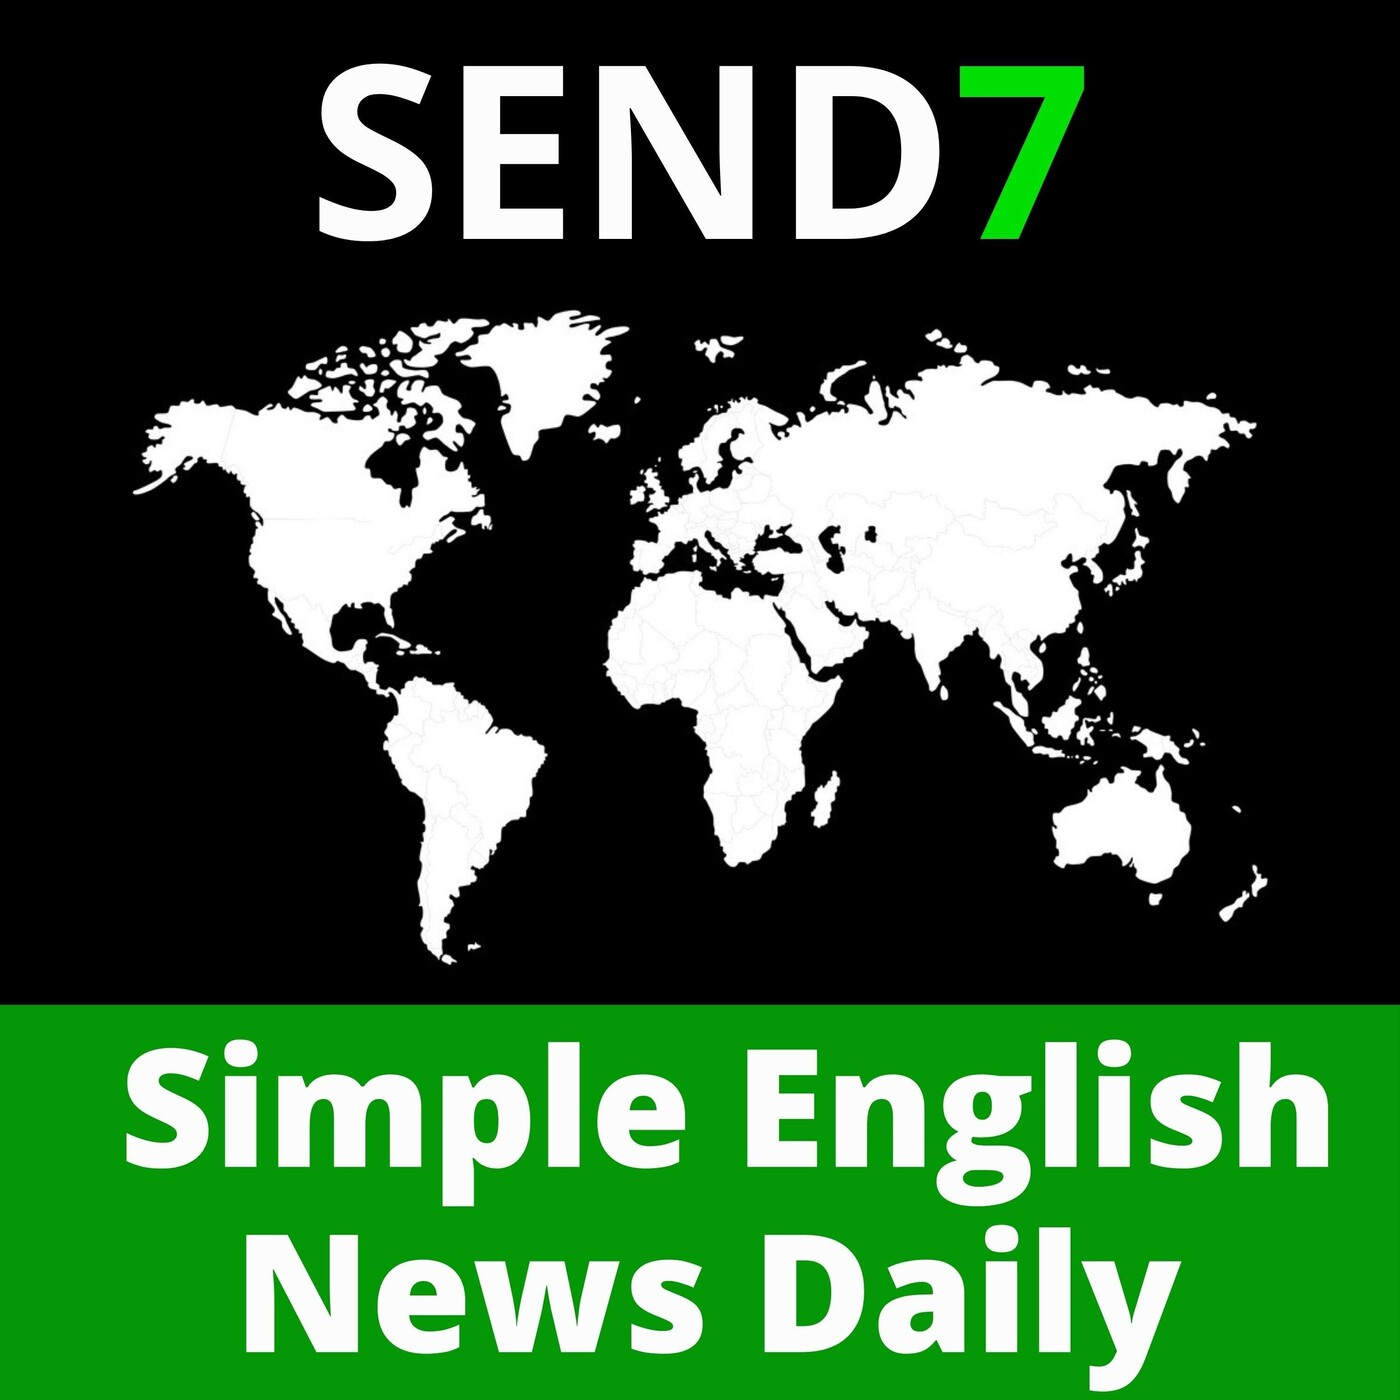 Thursday 6th August 2020. World News. Today: Lebanon explosion updates. New Hindu Temple Conflict. Sri Lanka Election...